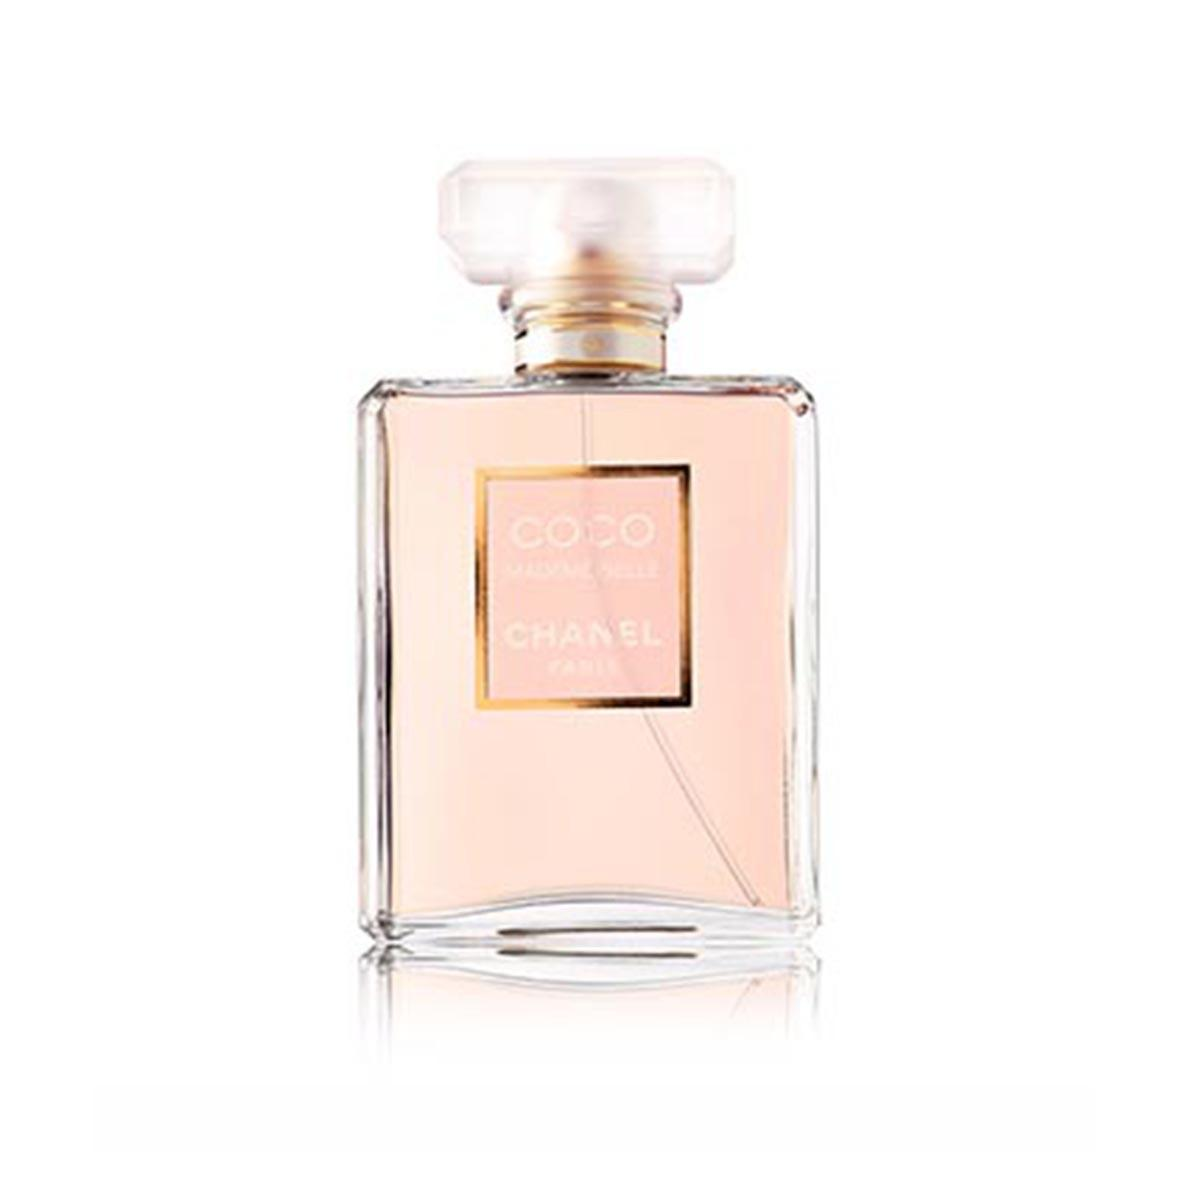 Chanel fragrances Coco Mademoiselle Eau De Toilette 100ml